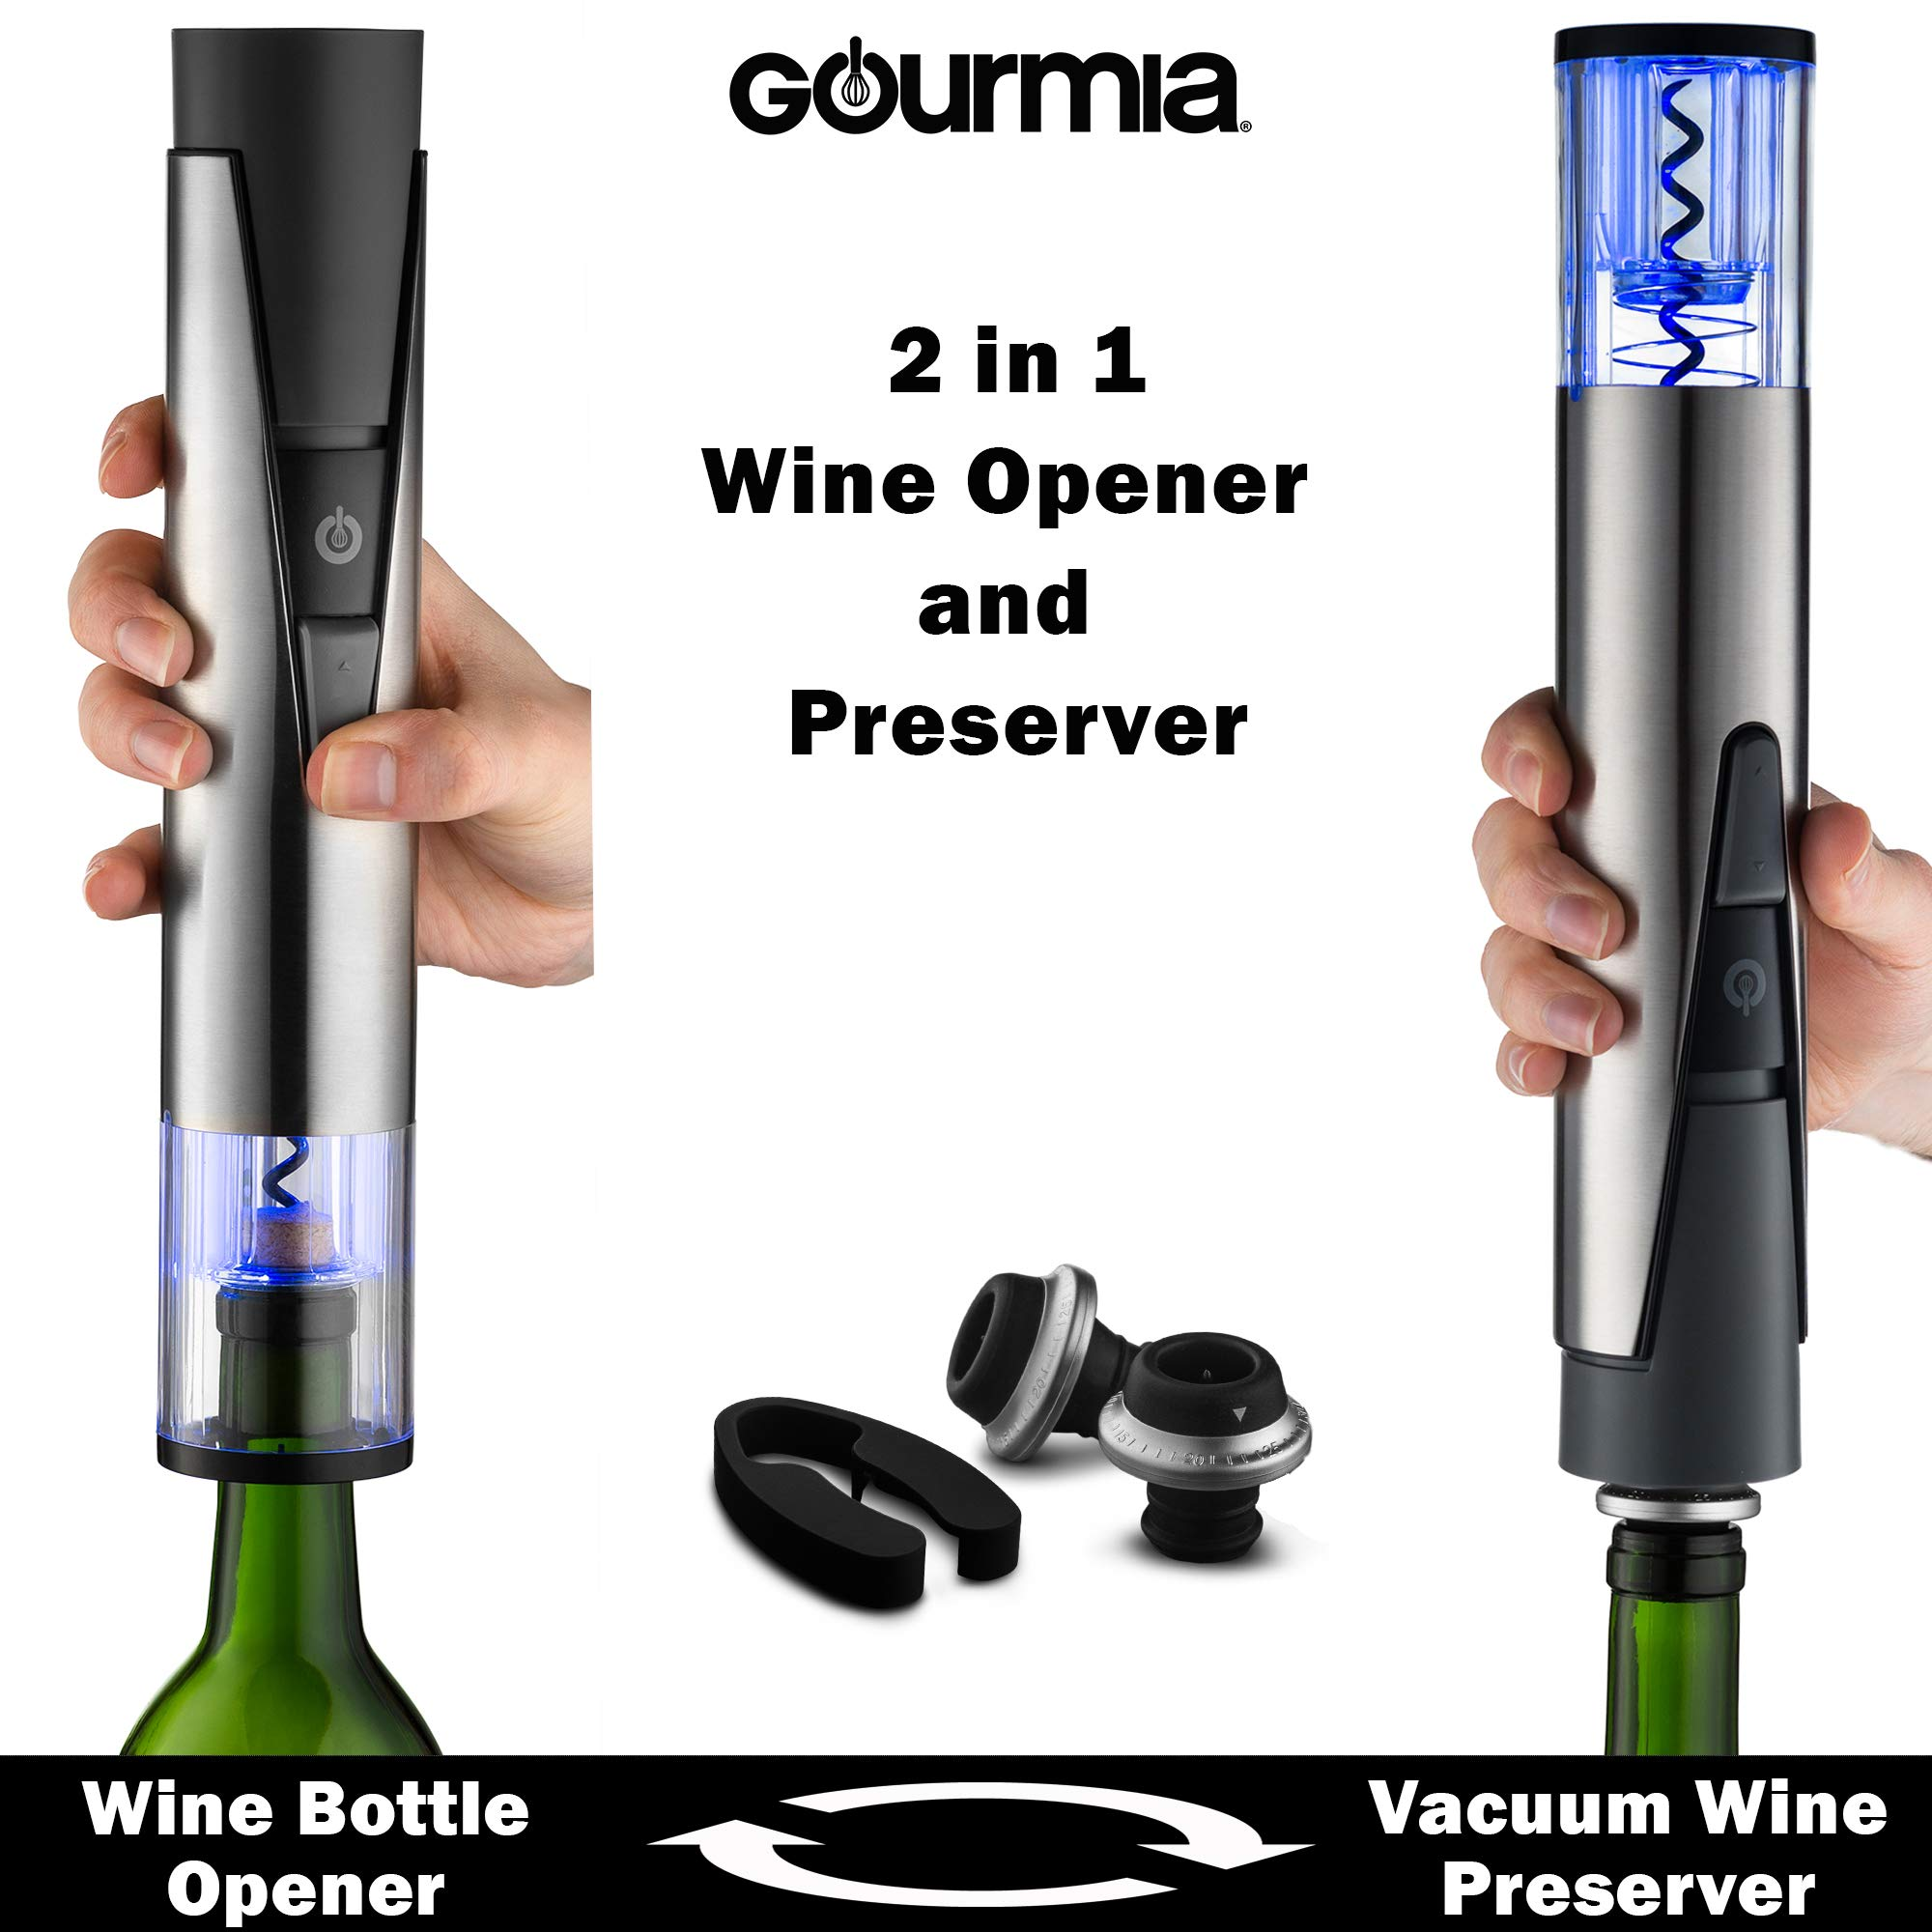 Gourmia 2 in 1 Wine Opener and Preserver set Electric Corkscrew Rechargeable Wine Bottle Opener and Sealer Removes Corks,Vacuum Seals and Preserves Wine Includes Foil Cutter,2 Stoppers,Recharging Base by Gourmia (Image #2)